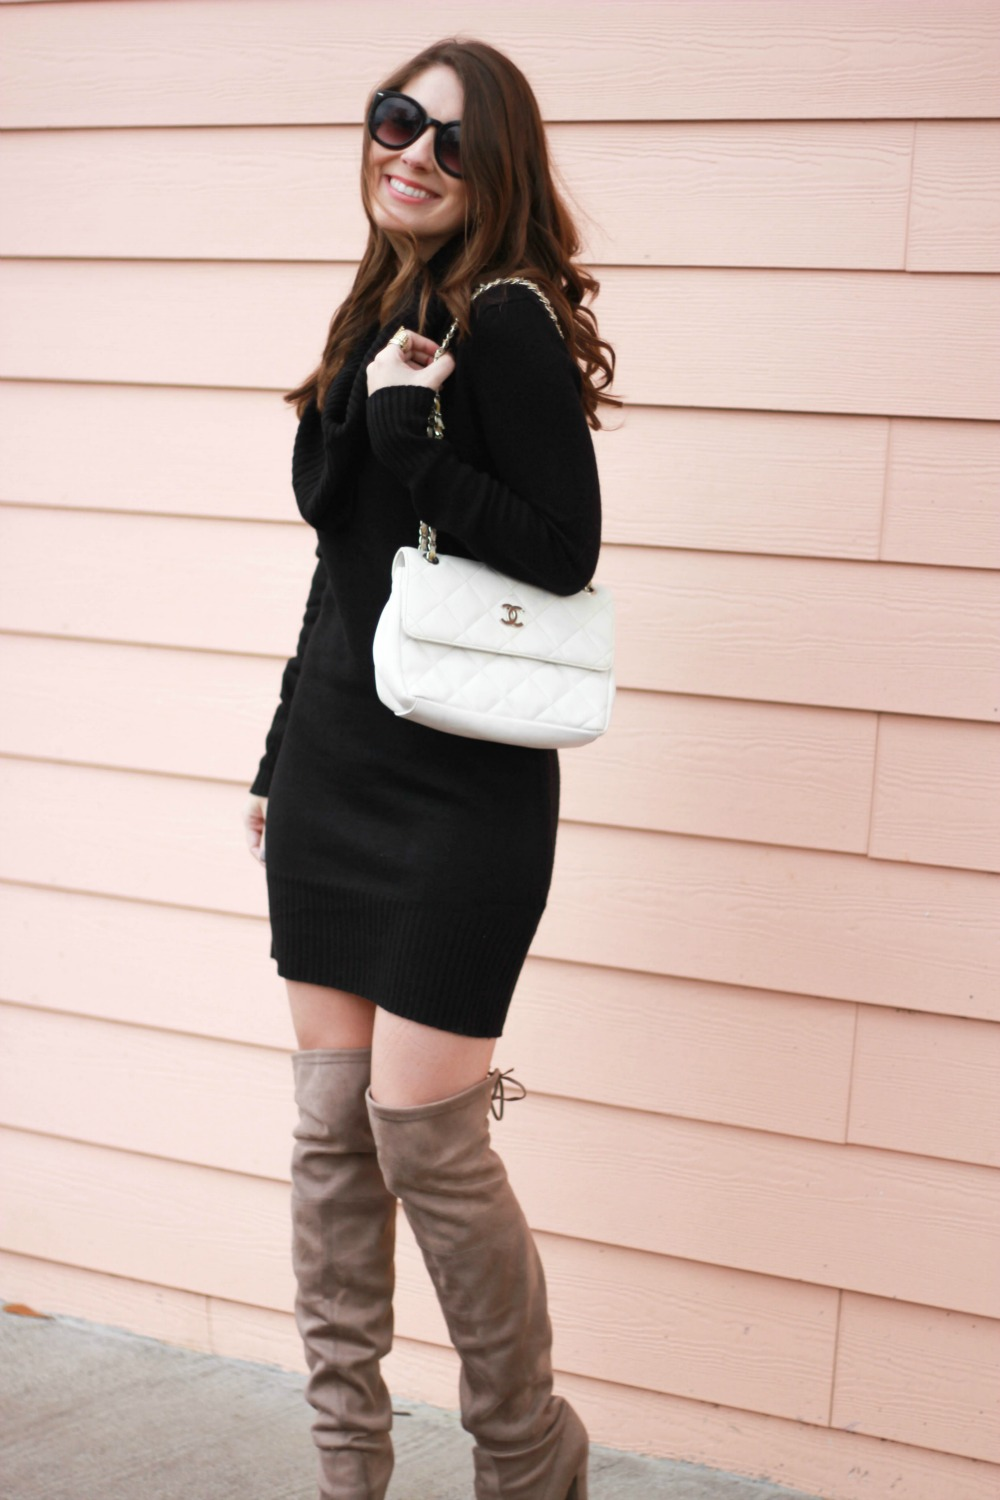 977874eb530 Sweater Dress - BNB styling